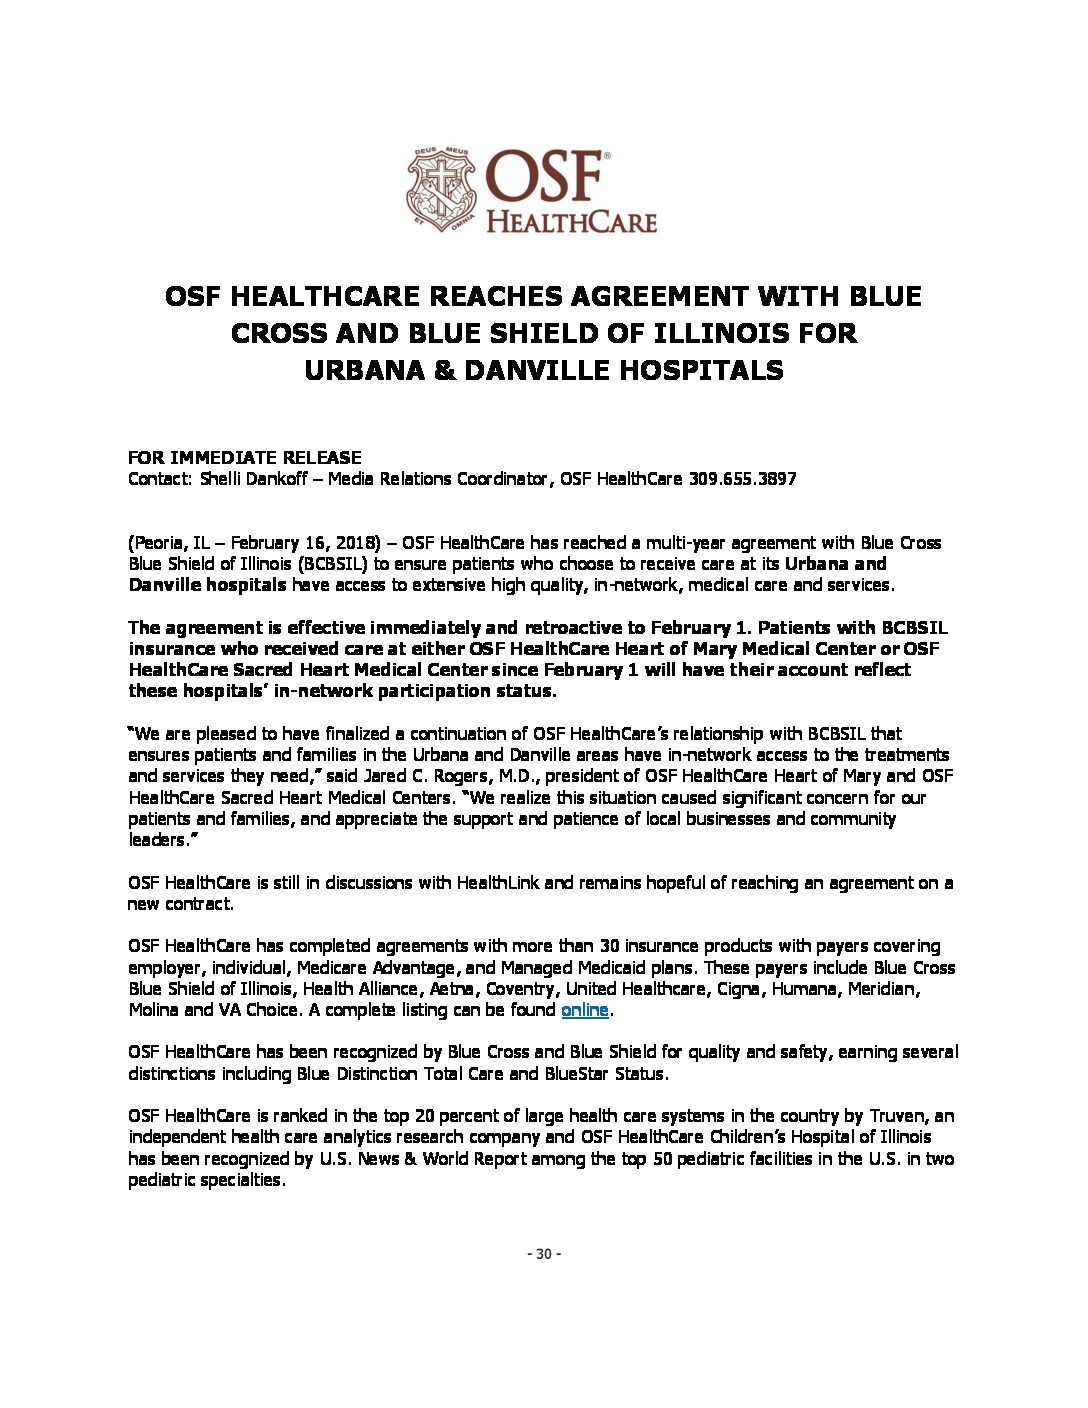 OSF HealthCare-BCBSIL Agreement Release 2-16-18 FINAL - Mix